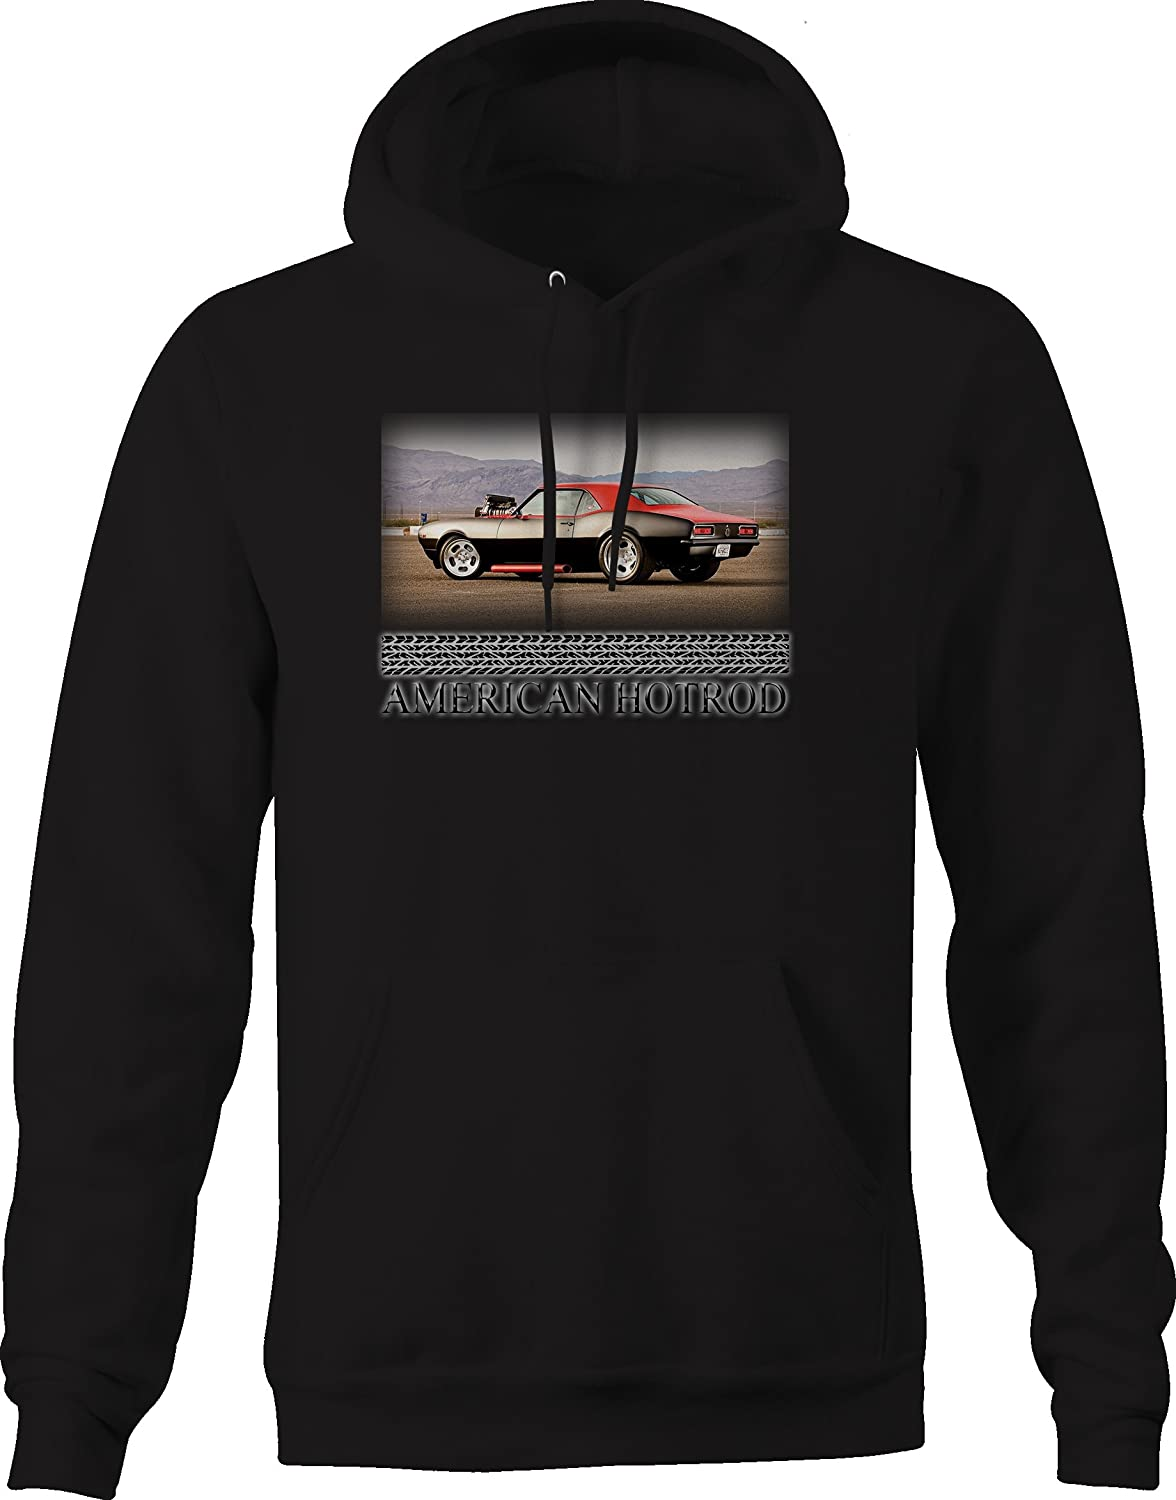 Bold Imprints American Hotrod Muscle Car Camaro Racing Blower Sidepipes Graphic Hoodie for Men